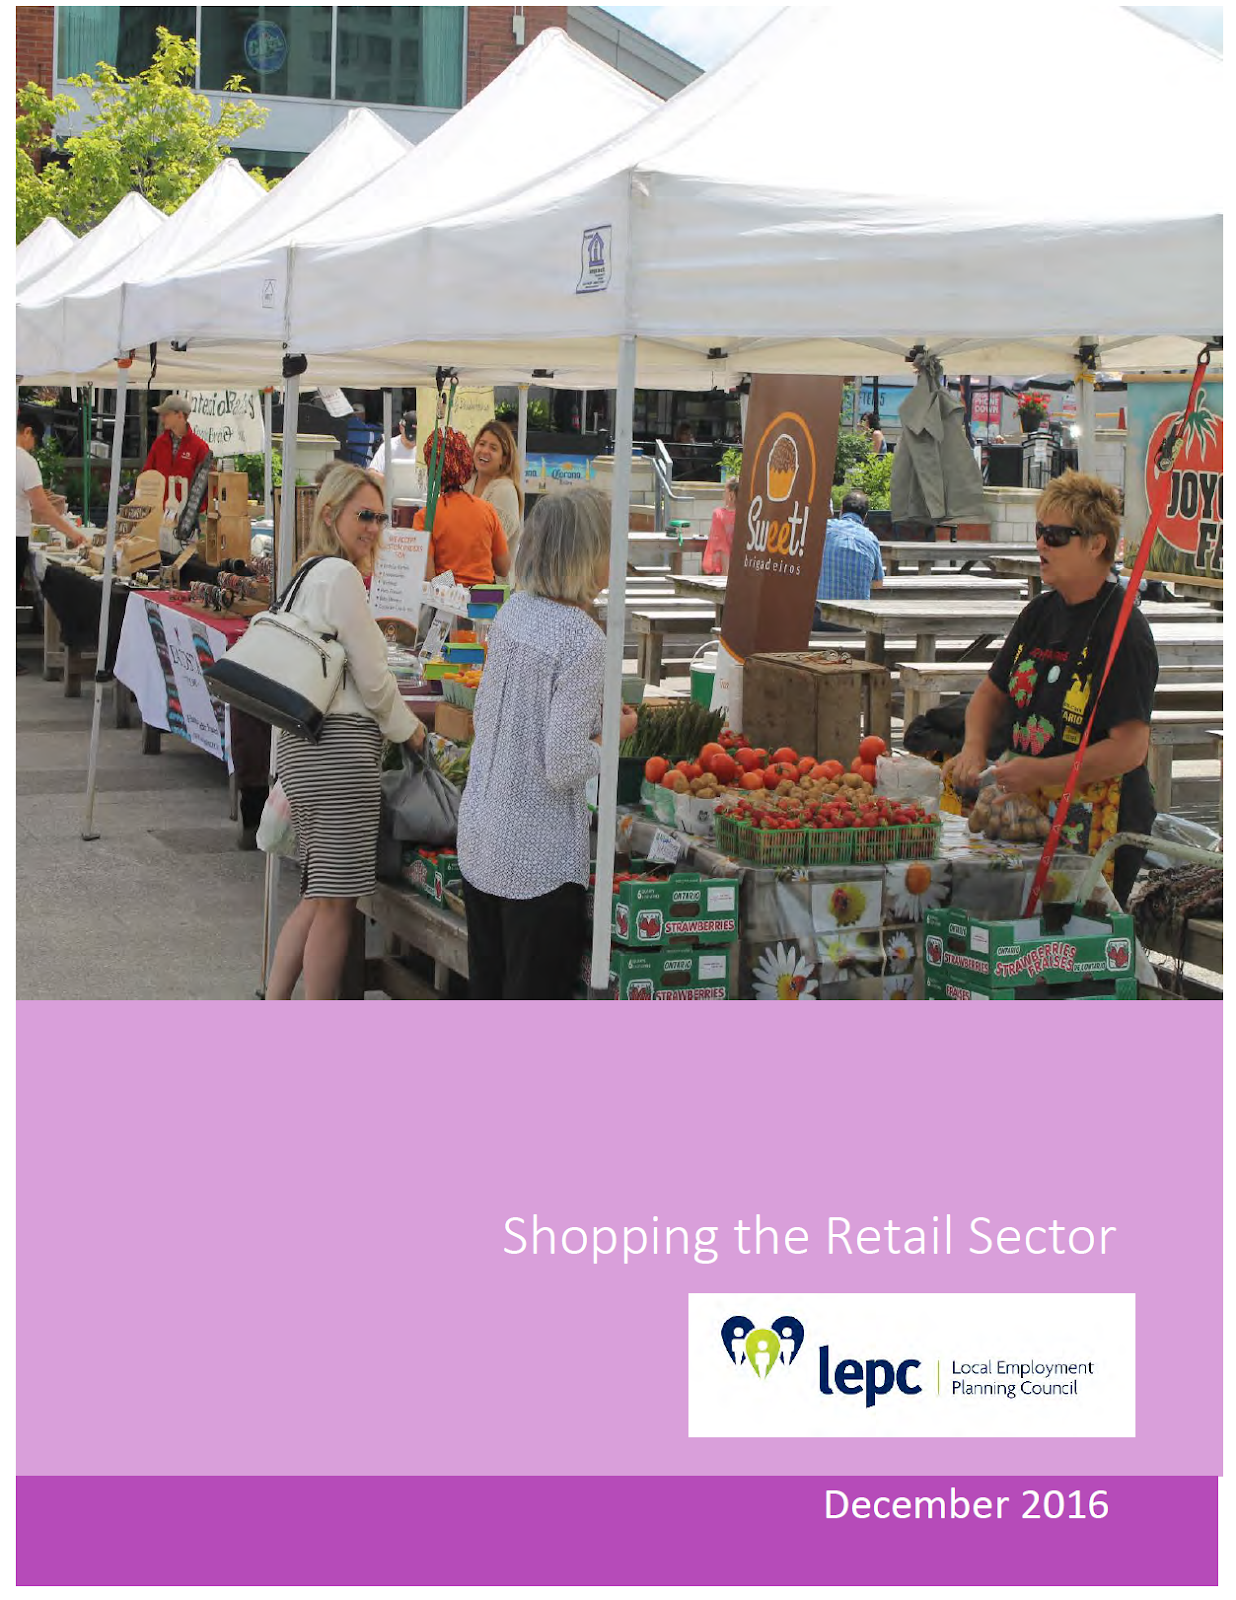 Shopping the Retail Sector